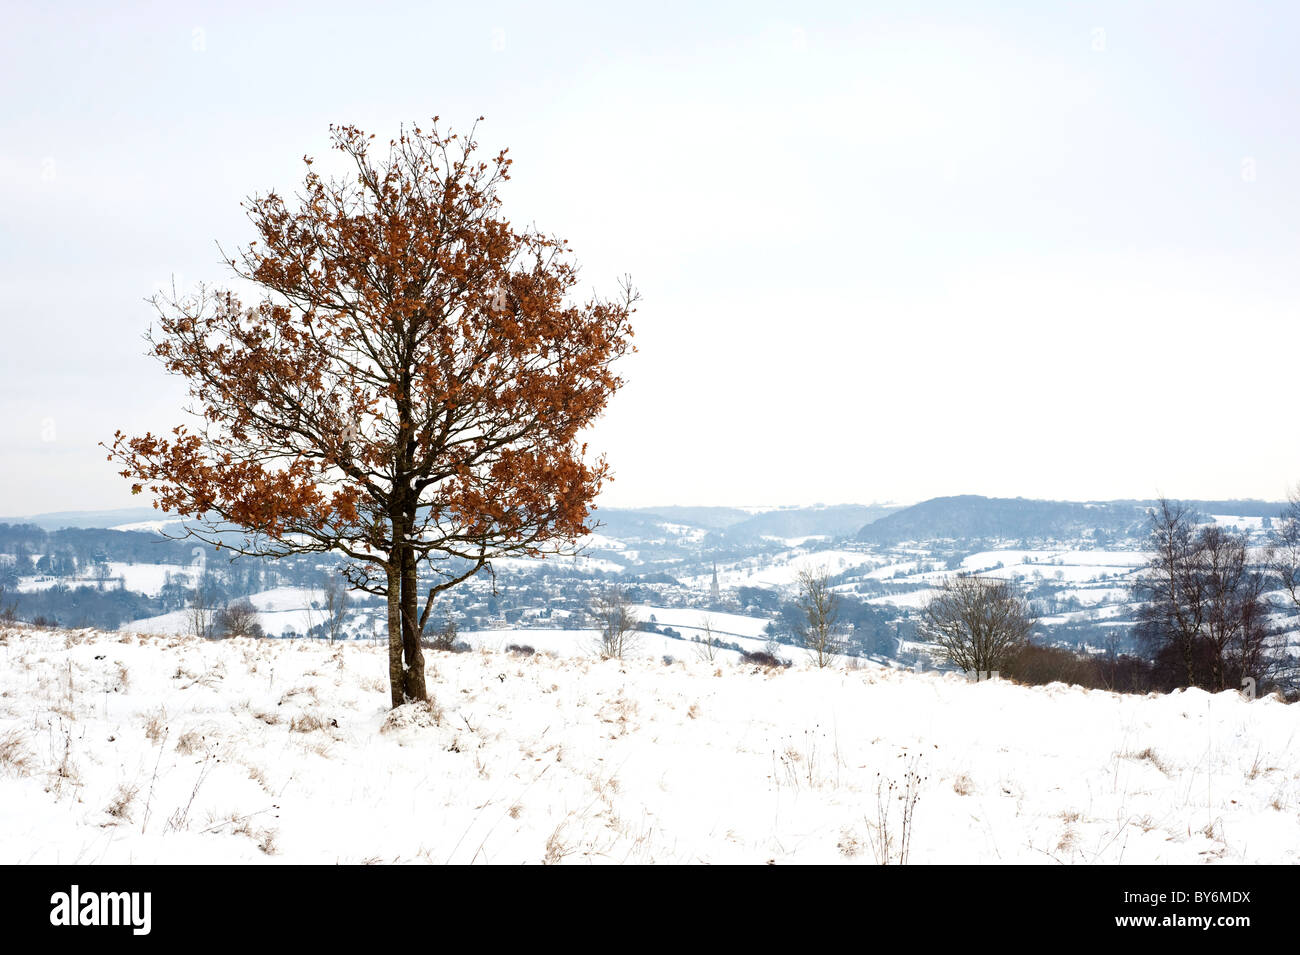 Snow covered view across the Painswick Valley near Edge, Gloucestershire, England, United Kingdom - Stock Image